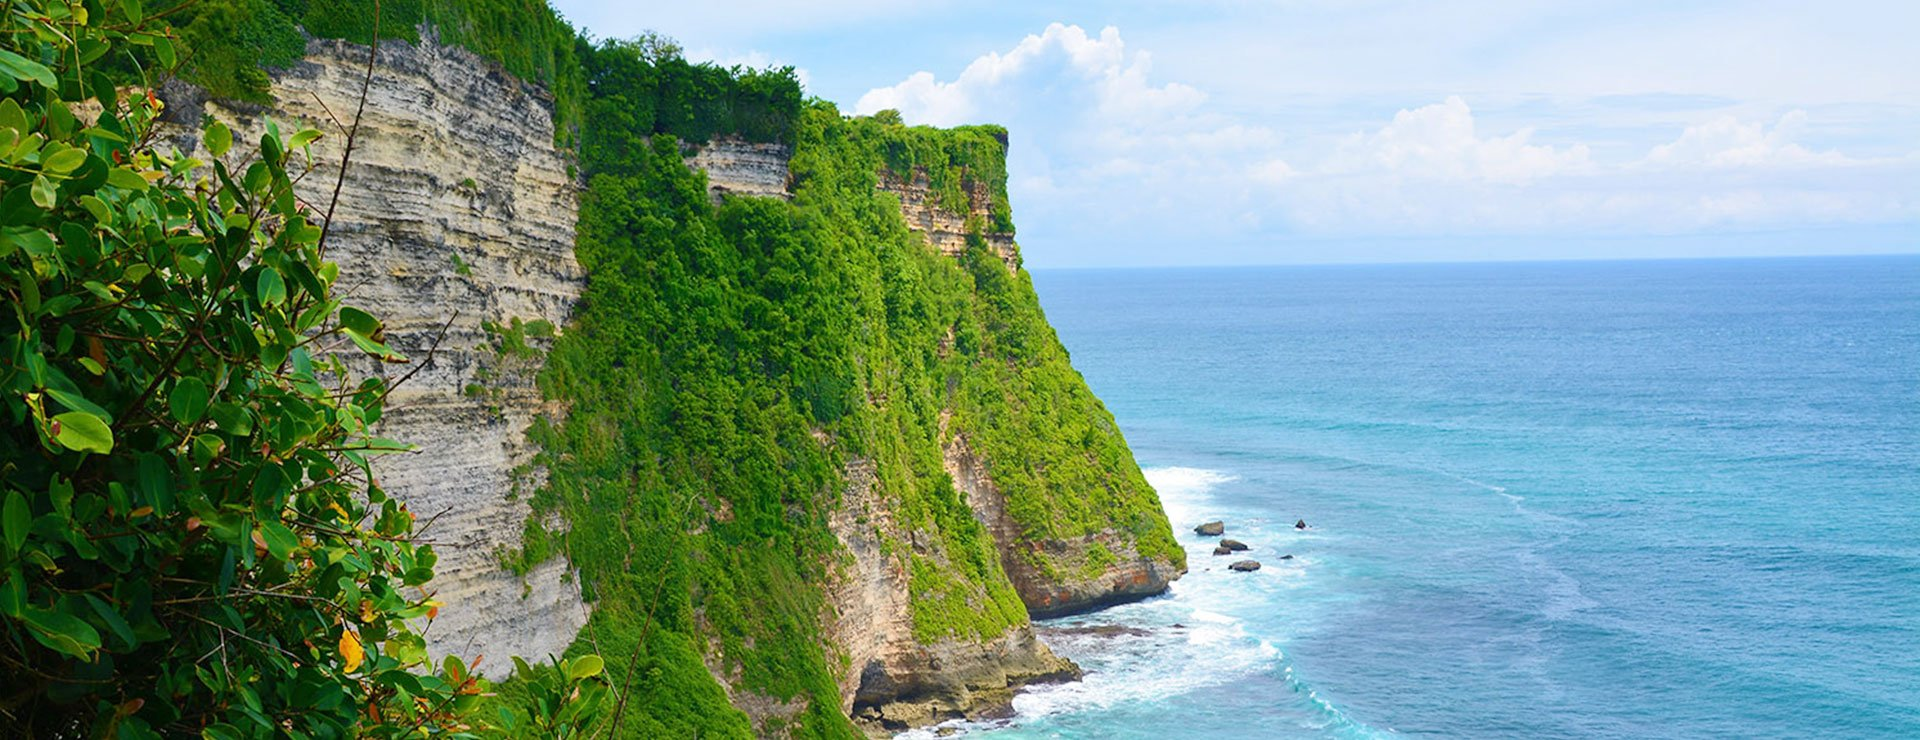 Top Temples To Visit In Bali (P.1)